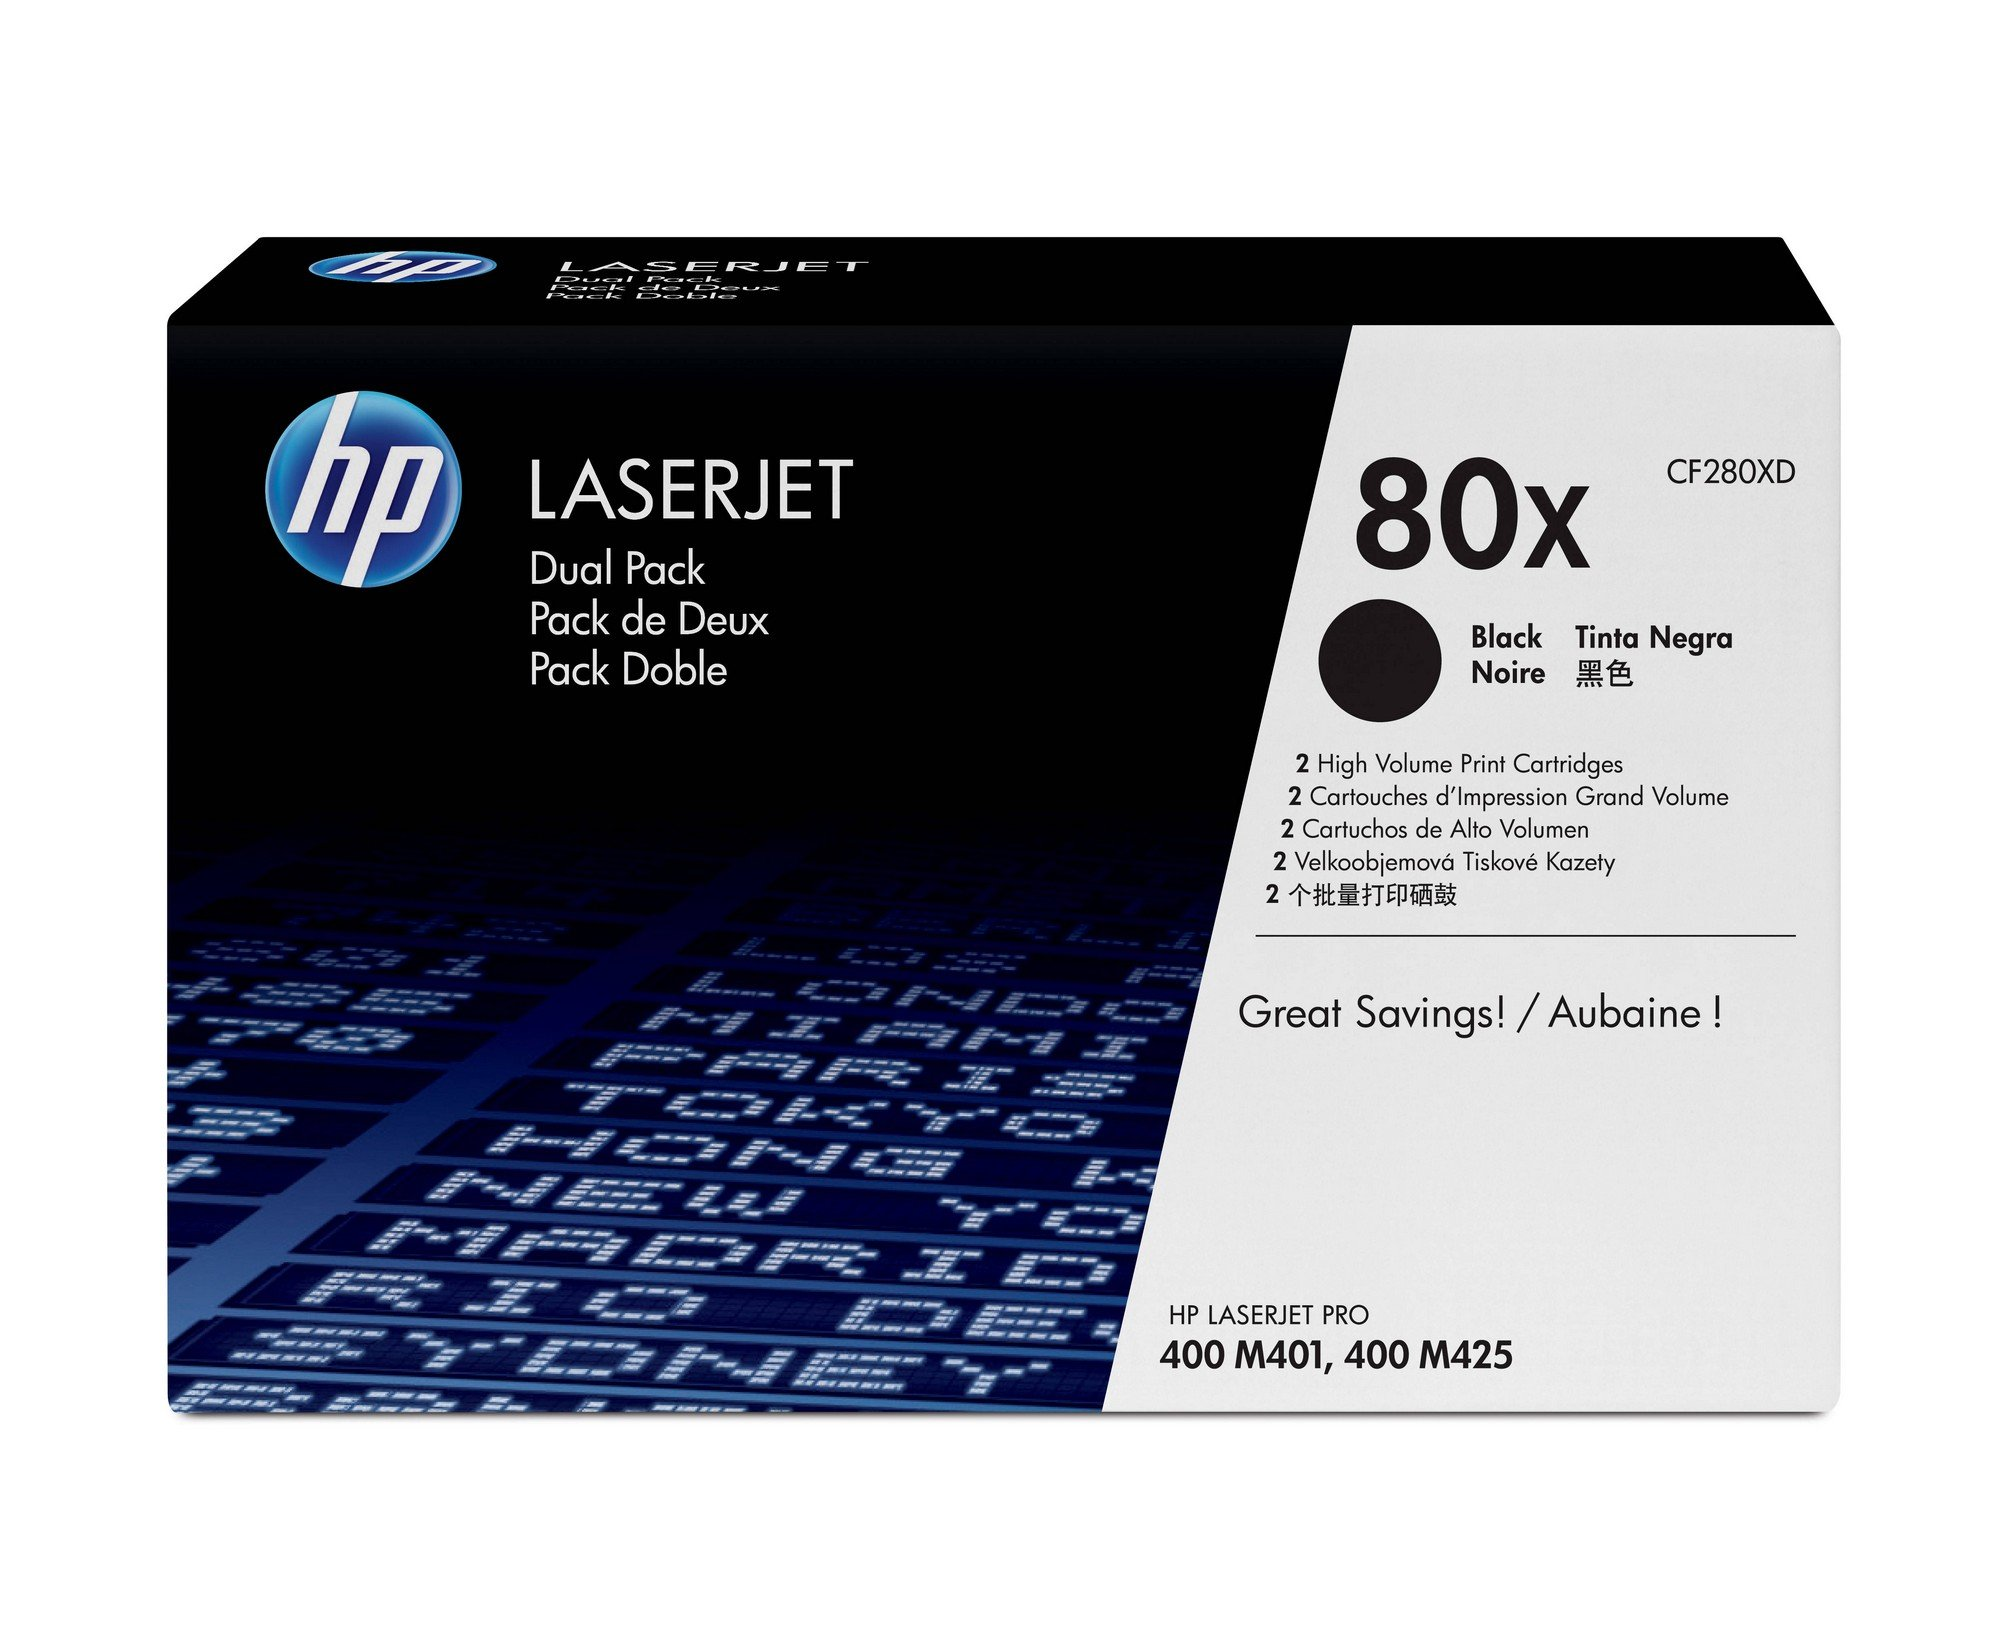 HP 80X (CF280X) Black Toner Cartridge High Yield, 2 Toner Cartridges (CF280XD)